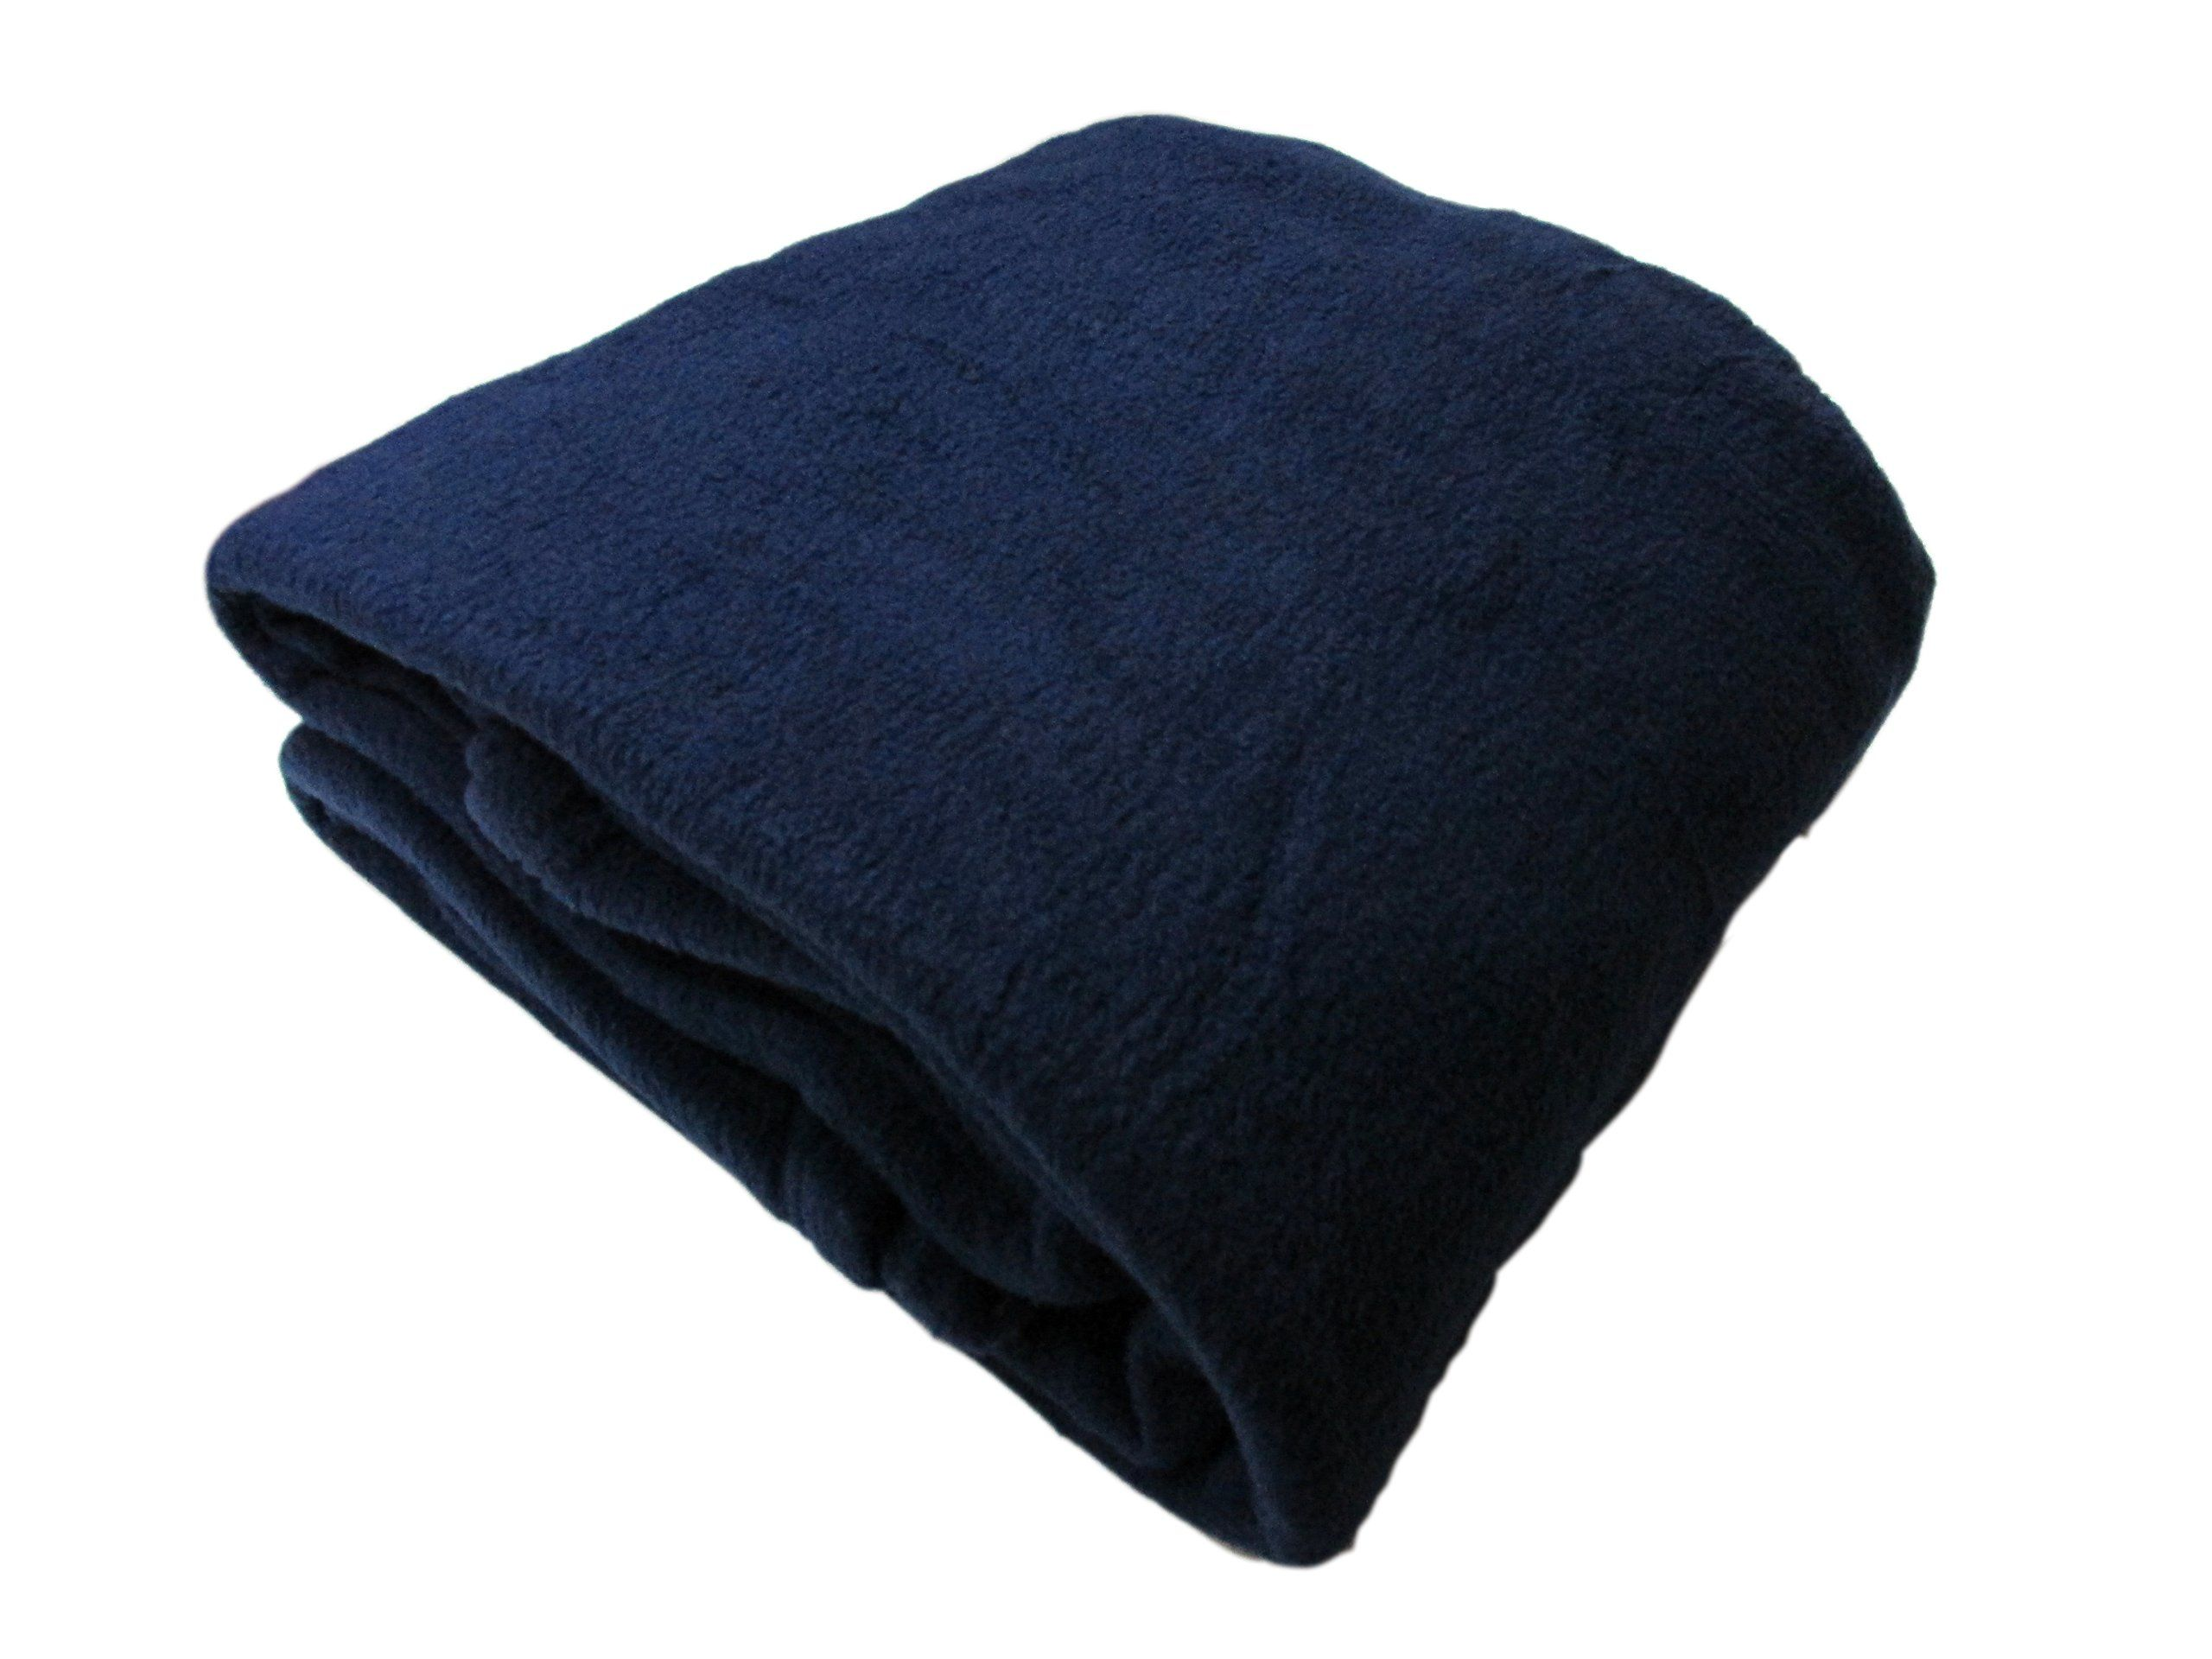 Cozy Fleece Alta Luxury Hotel Fleece Blanket, King, Navy